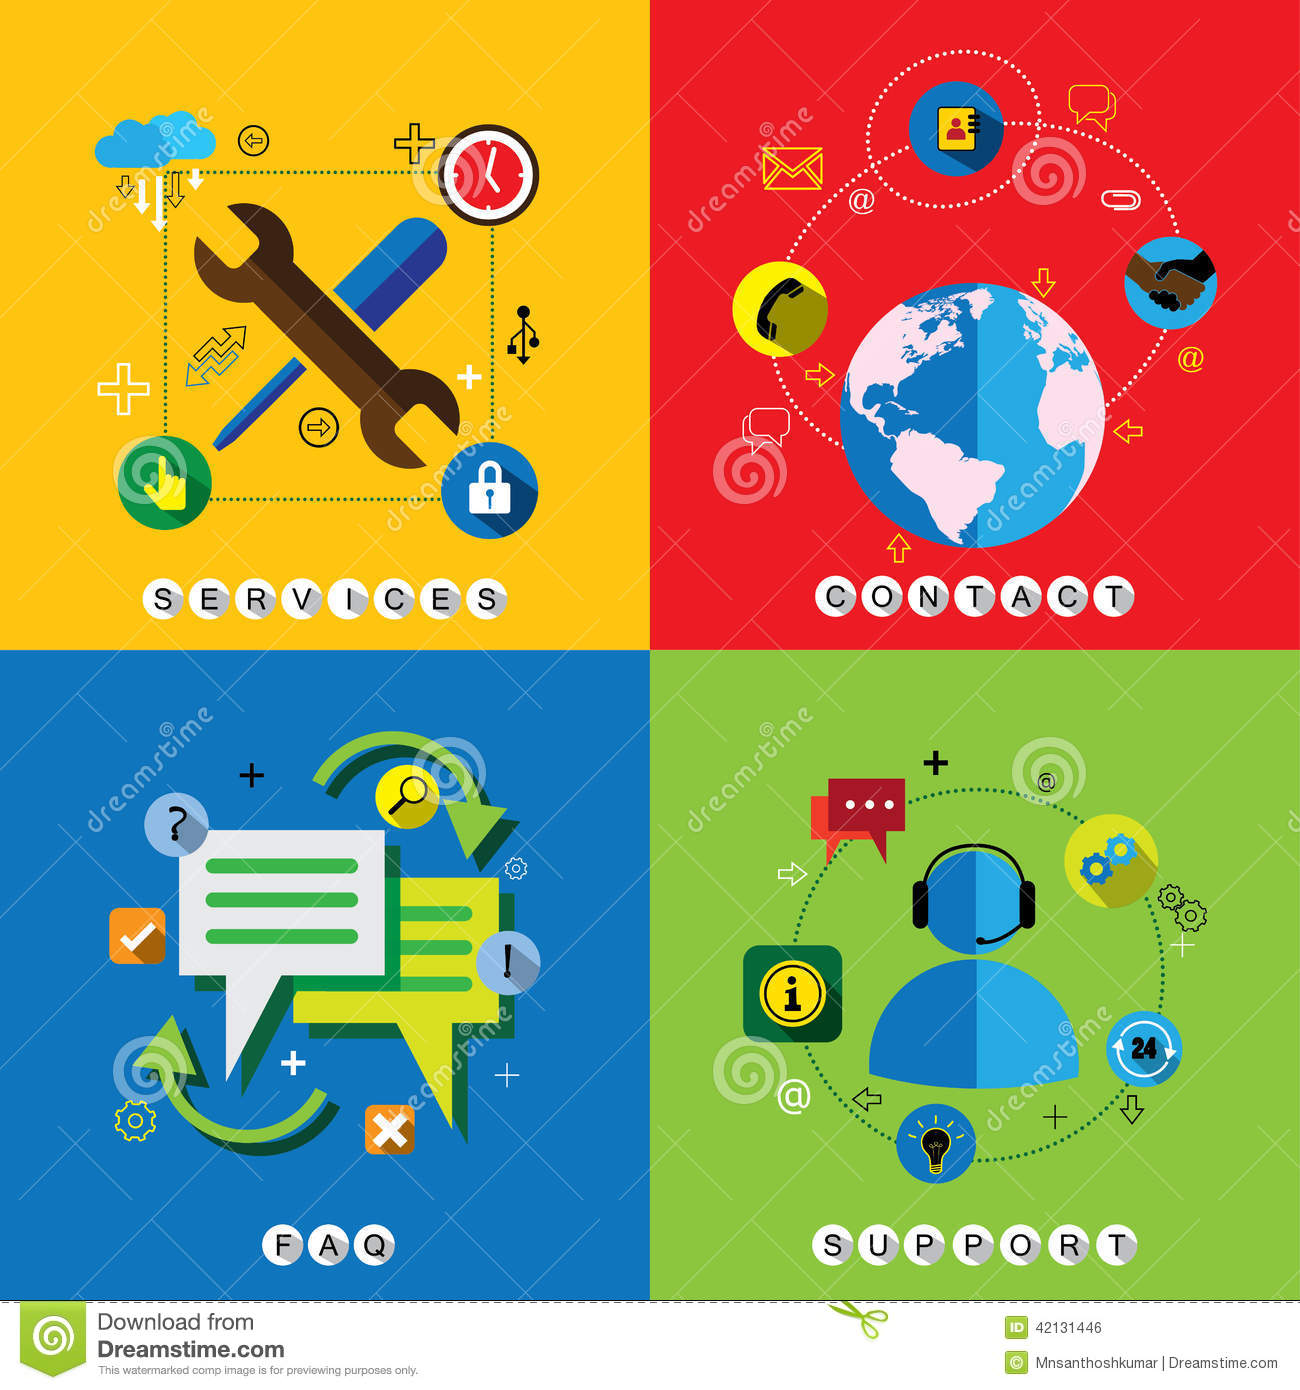 Flat design web icons vector set for contact, service, faq & sup